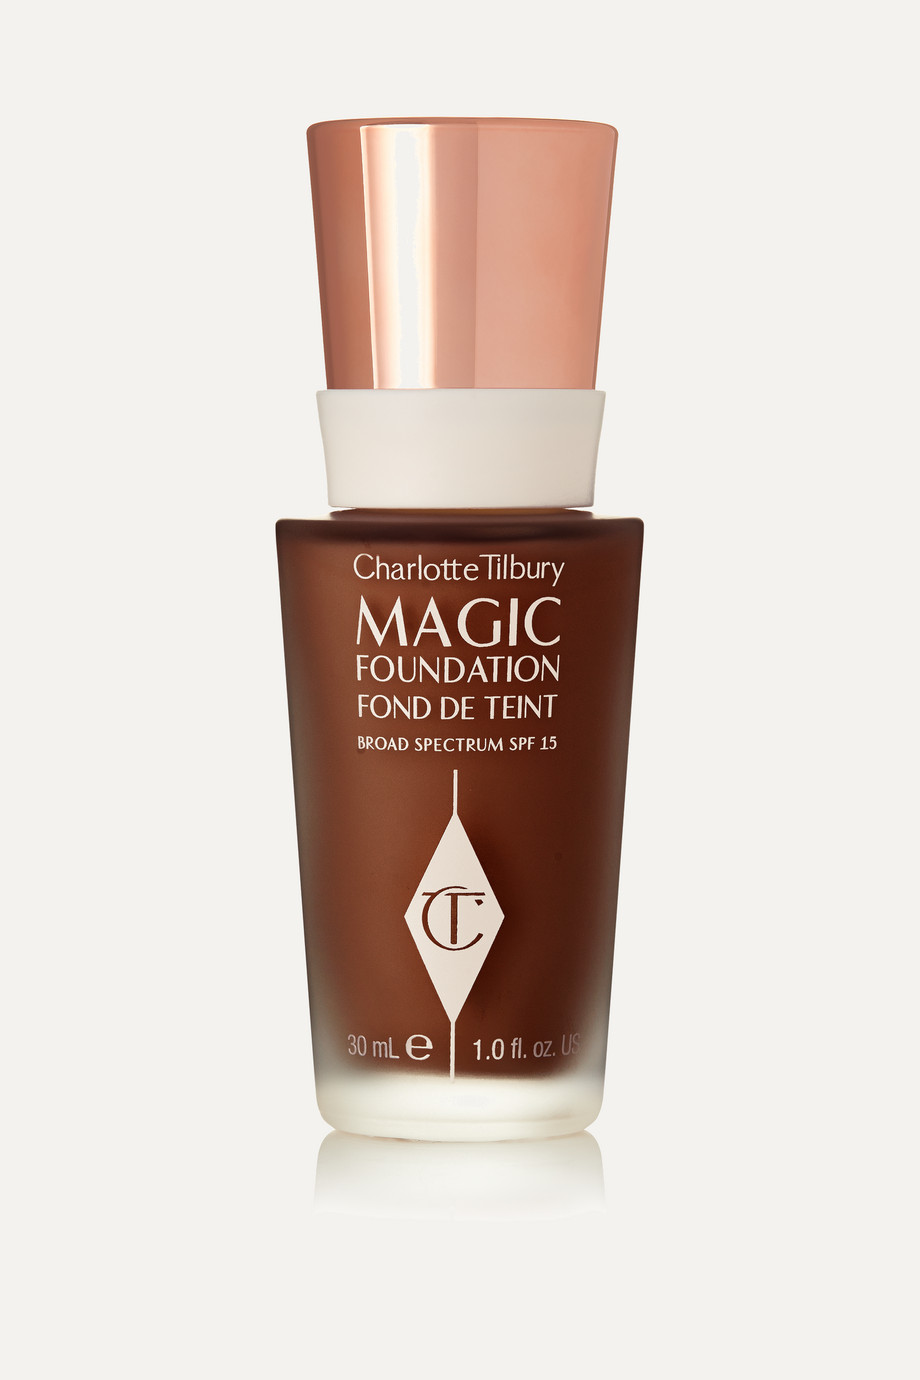 Charlotte Tilbury Magic Foundation Flawless Long-Lasting Coverage LSF 15 – Shade 12, 30 ml – Foundation